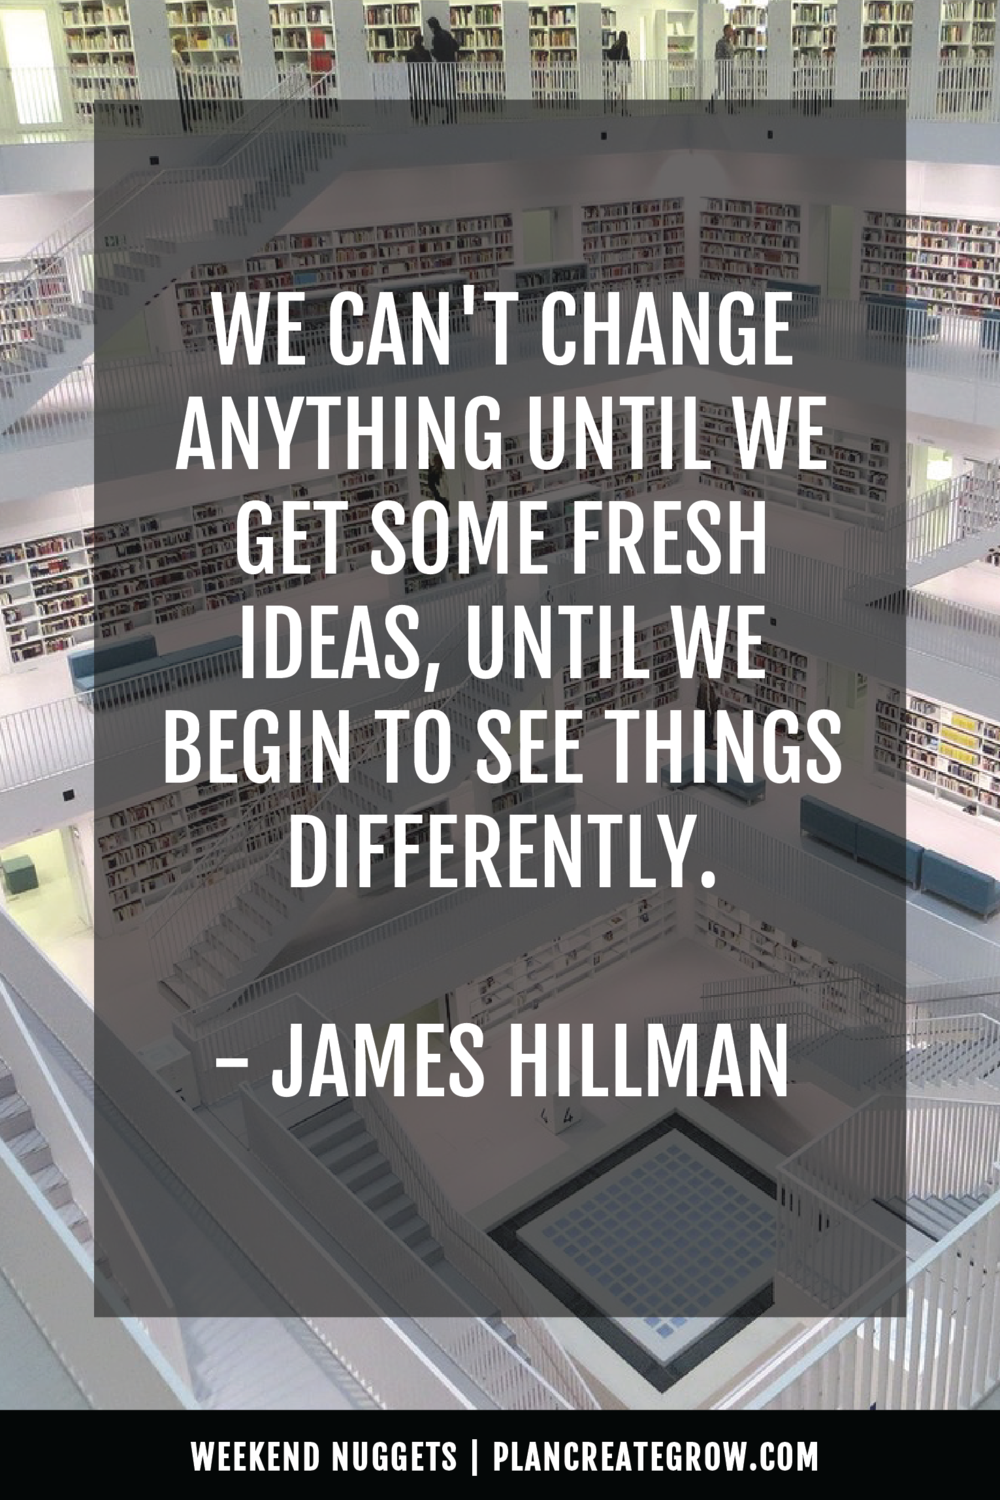 """We can't change anything until we get some fresh ideas, until we begin to see things differently."" - James Hillman  This image forms part of a series called Weekend Nuggets - a collection of quotes and ideas curated to delight and inspire - shared each weekend. For more, visit plancreategrow.com/weekend-nuggets."